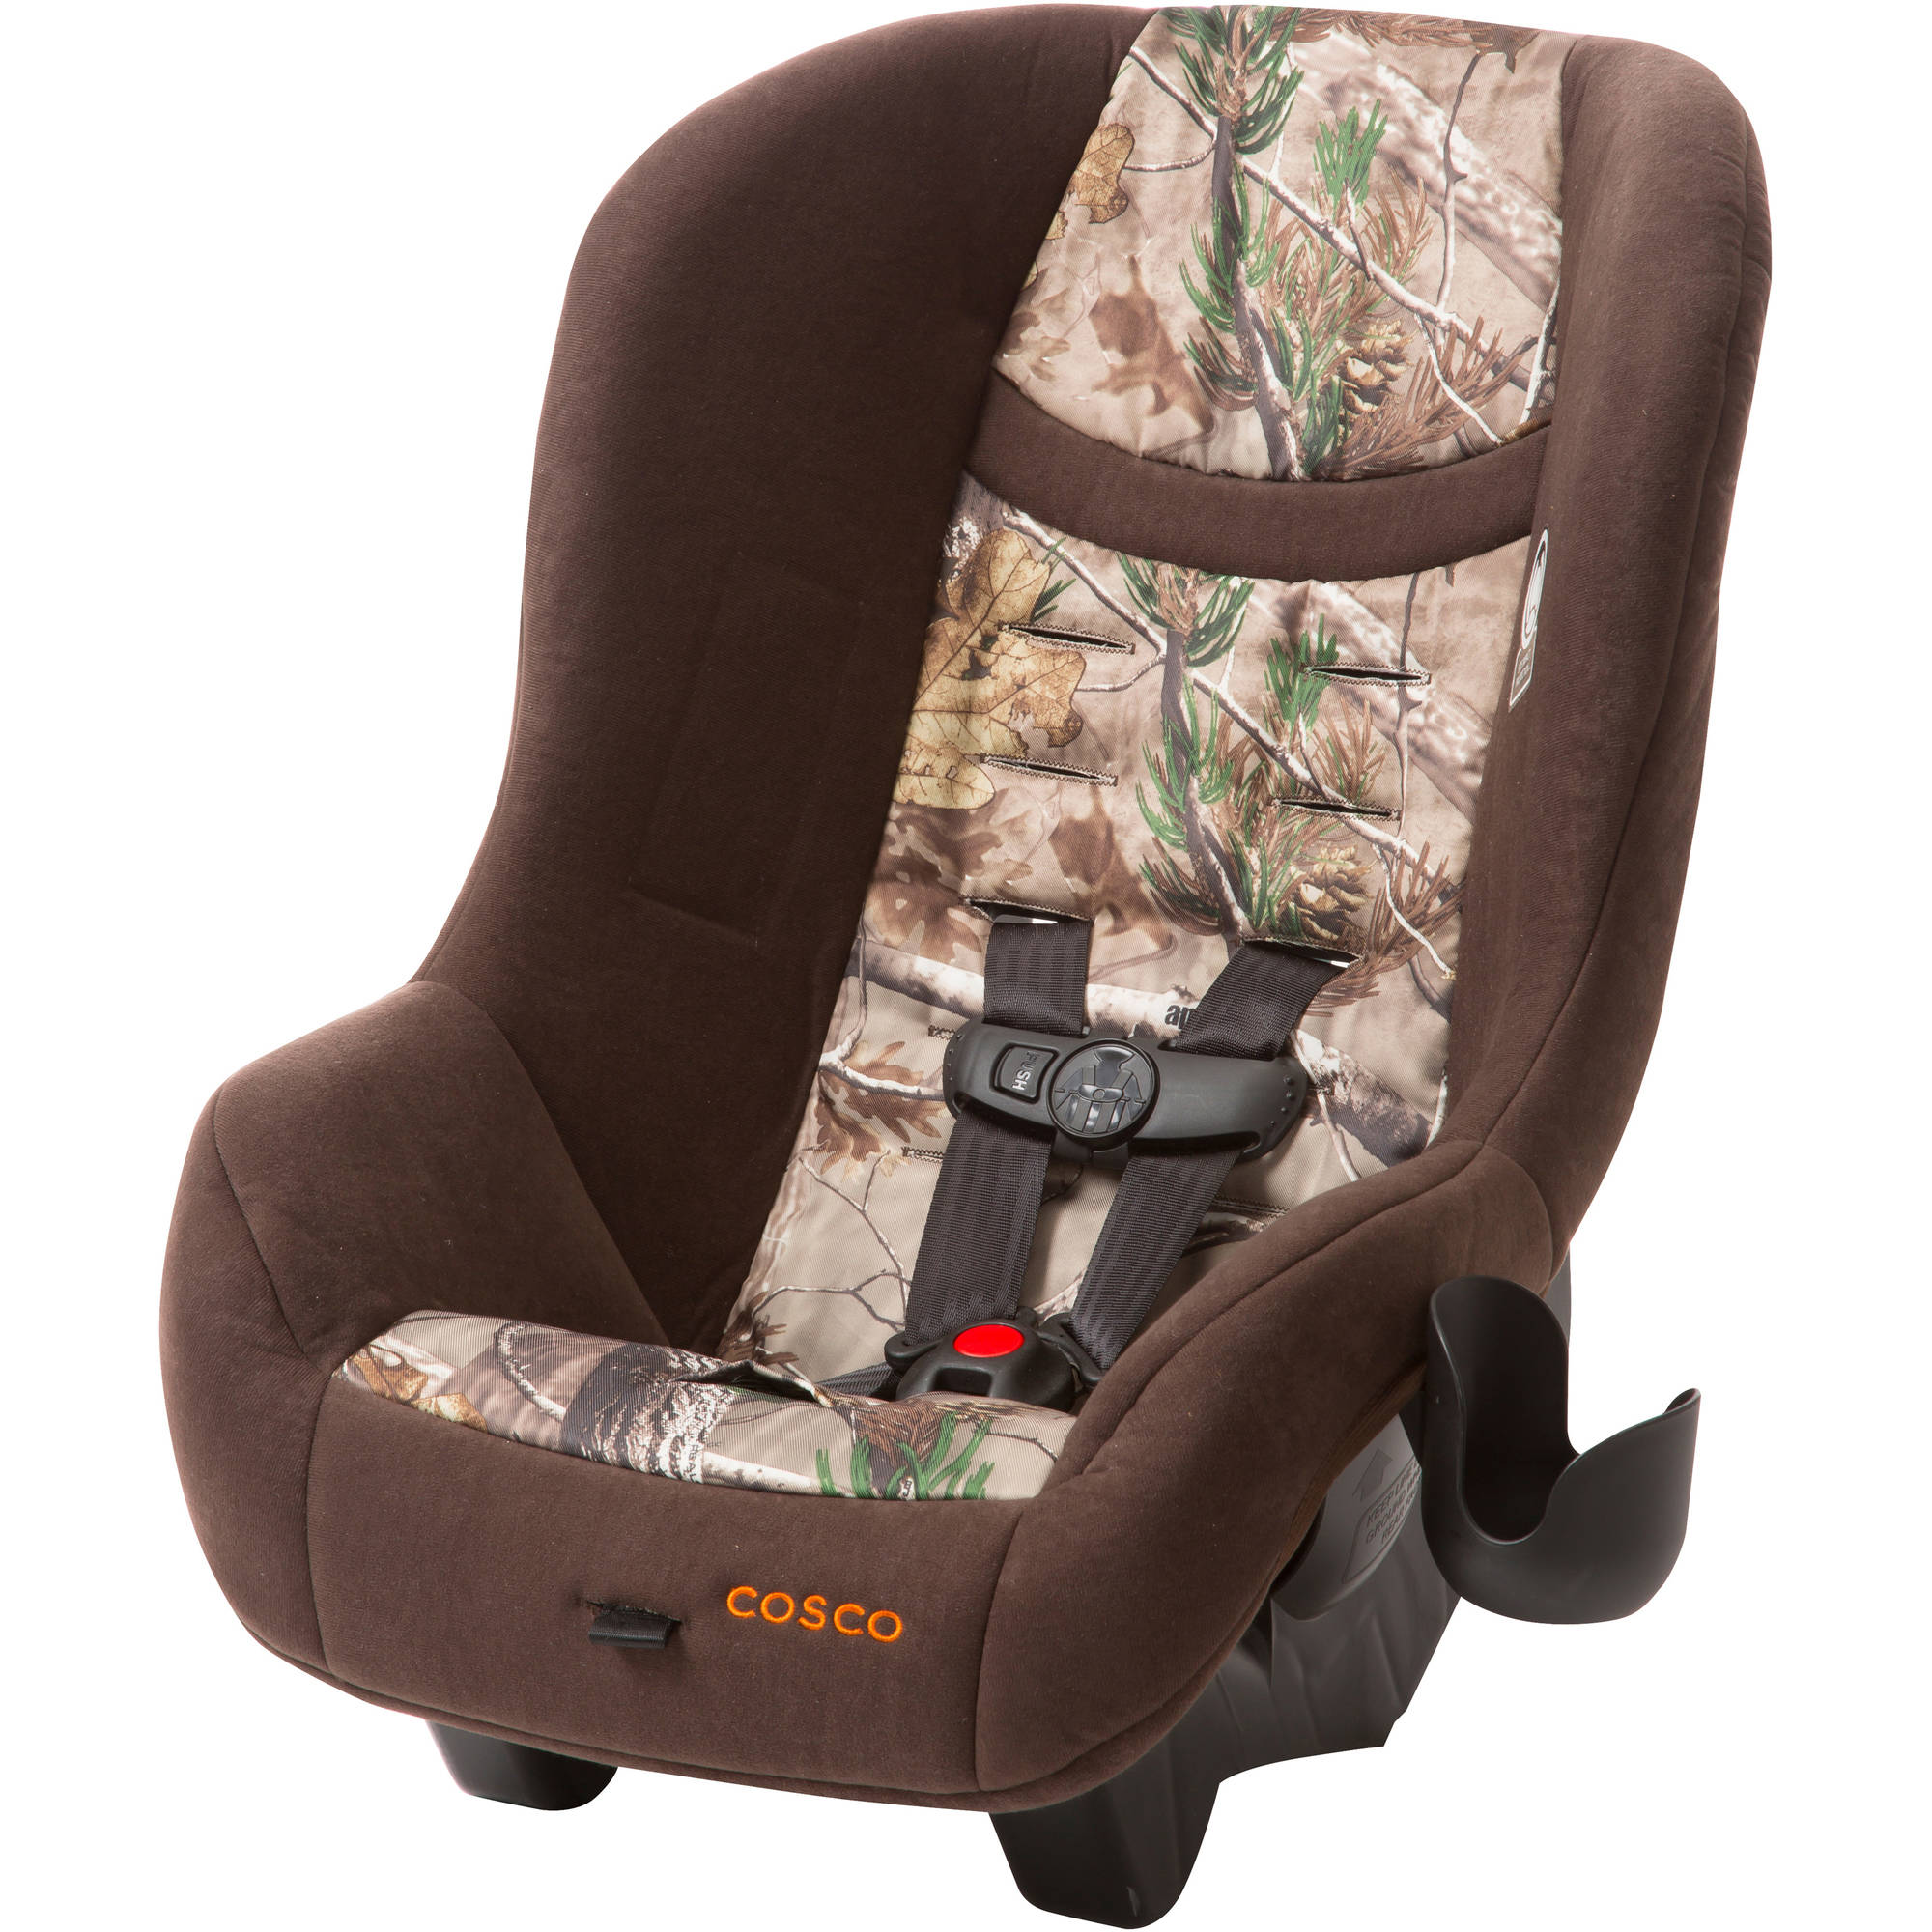 Cosco Scenera NEXT Convertible Car Seat, Choose your Color